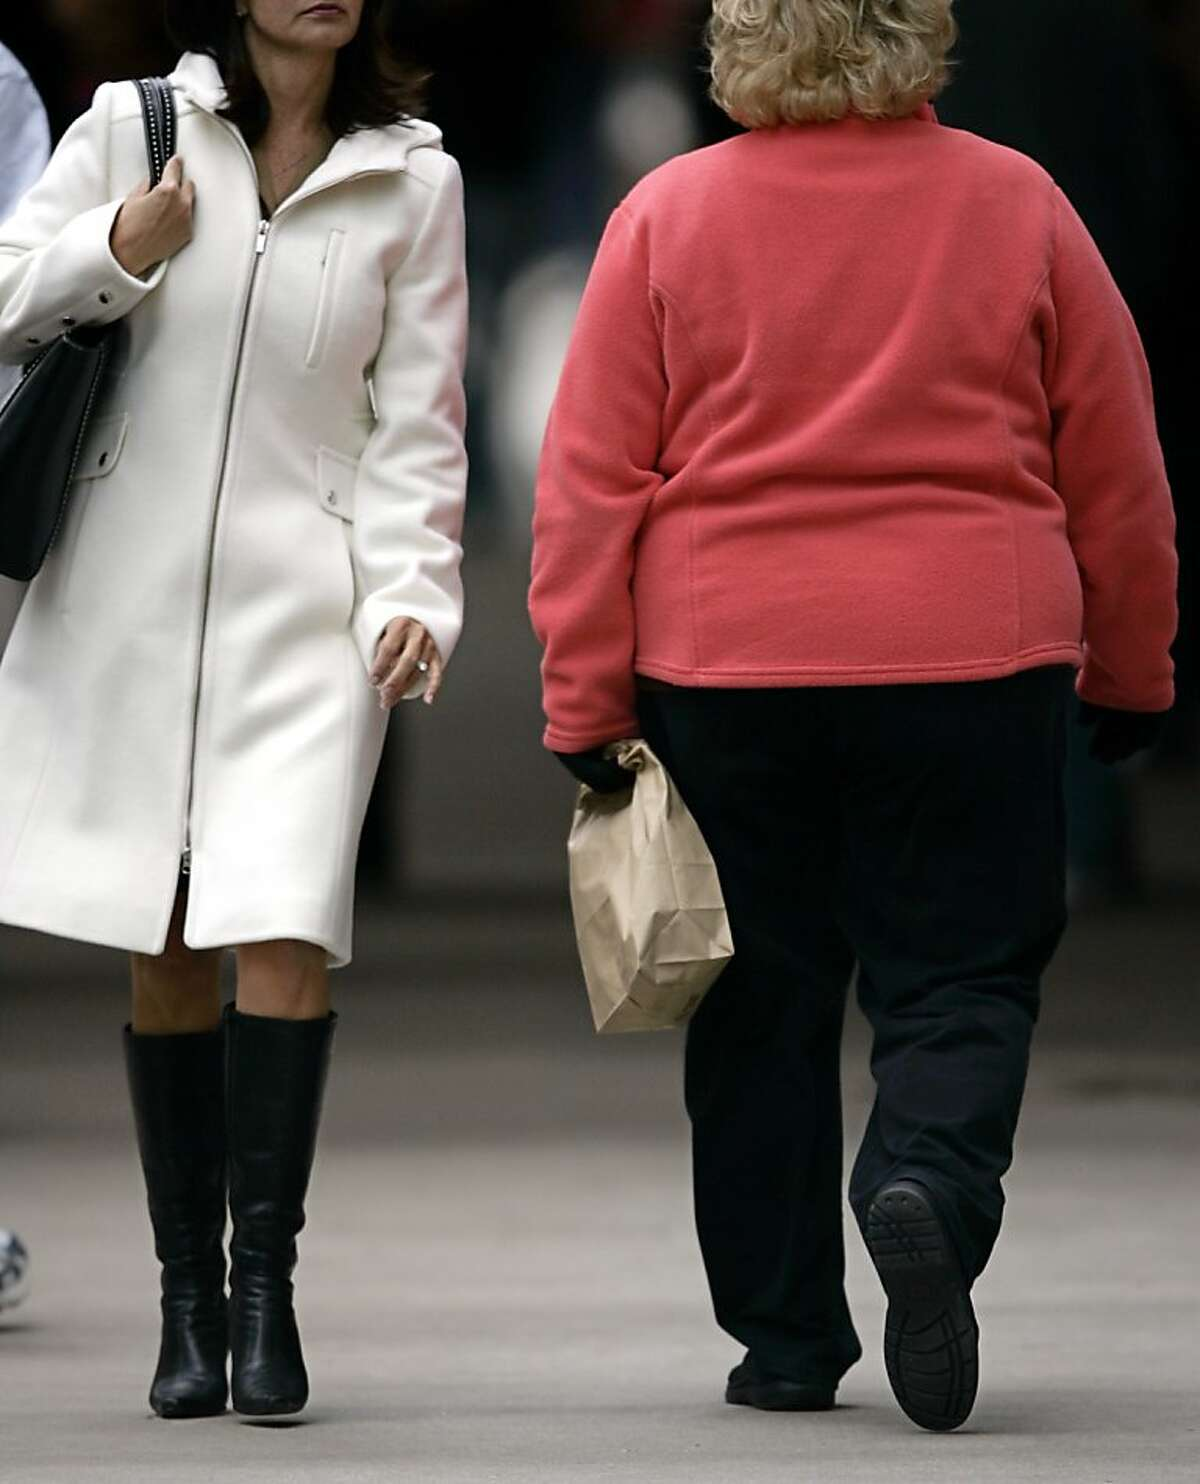 """(FILES)Women walk on Michigan Avenue in this October 19, 2006 photo in Chicago, Illinois. Forty-two percent of the US population could be obese by 2030, up from about one-third currently, and the associated rise in health woes would likely cost $550 billion over two decades, said a study on May 7, 2012. In real numbers, the increase would mean about 32 million more obese people, said the forecast led by researchers at Duke University in North Carolina and published in the American Journal of Preventive Medicine. An adult with a body mass index of 30 or higher is considered obese, such as a person who is 5'9"""" (1.75 meters tall) and weighs over 203 pounds (92 kilograms), according to the US Centers for Disease Control and Prevention. AFP PHOTO/ JEFF HAYNESJEFF HAYNES/AFP/GettyImages"""